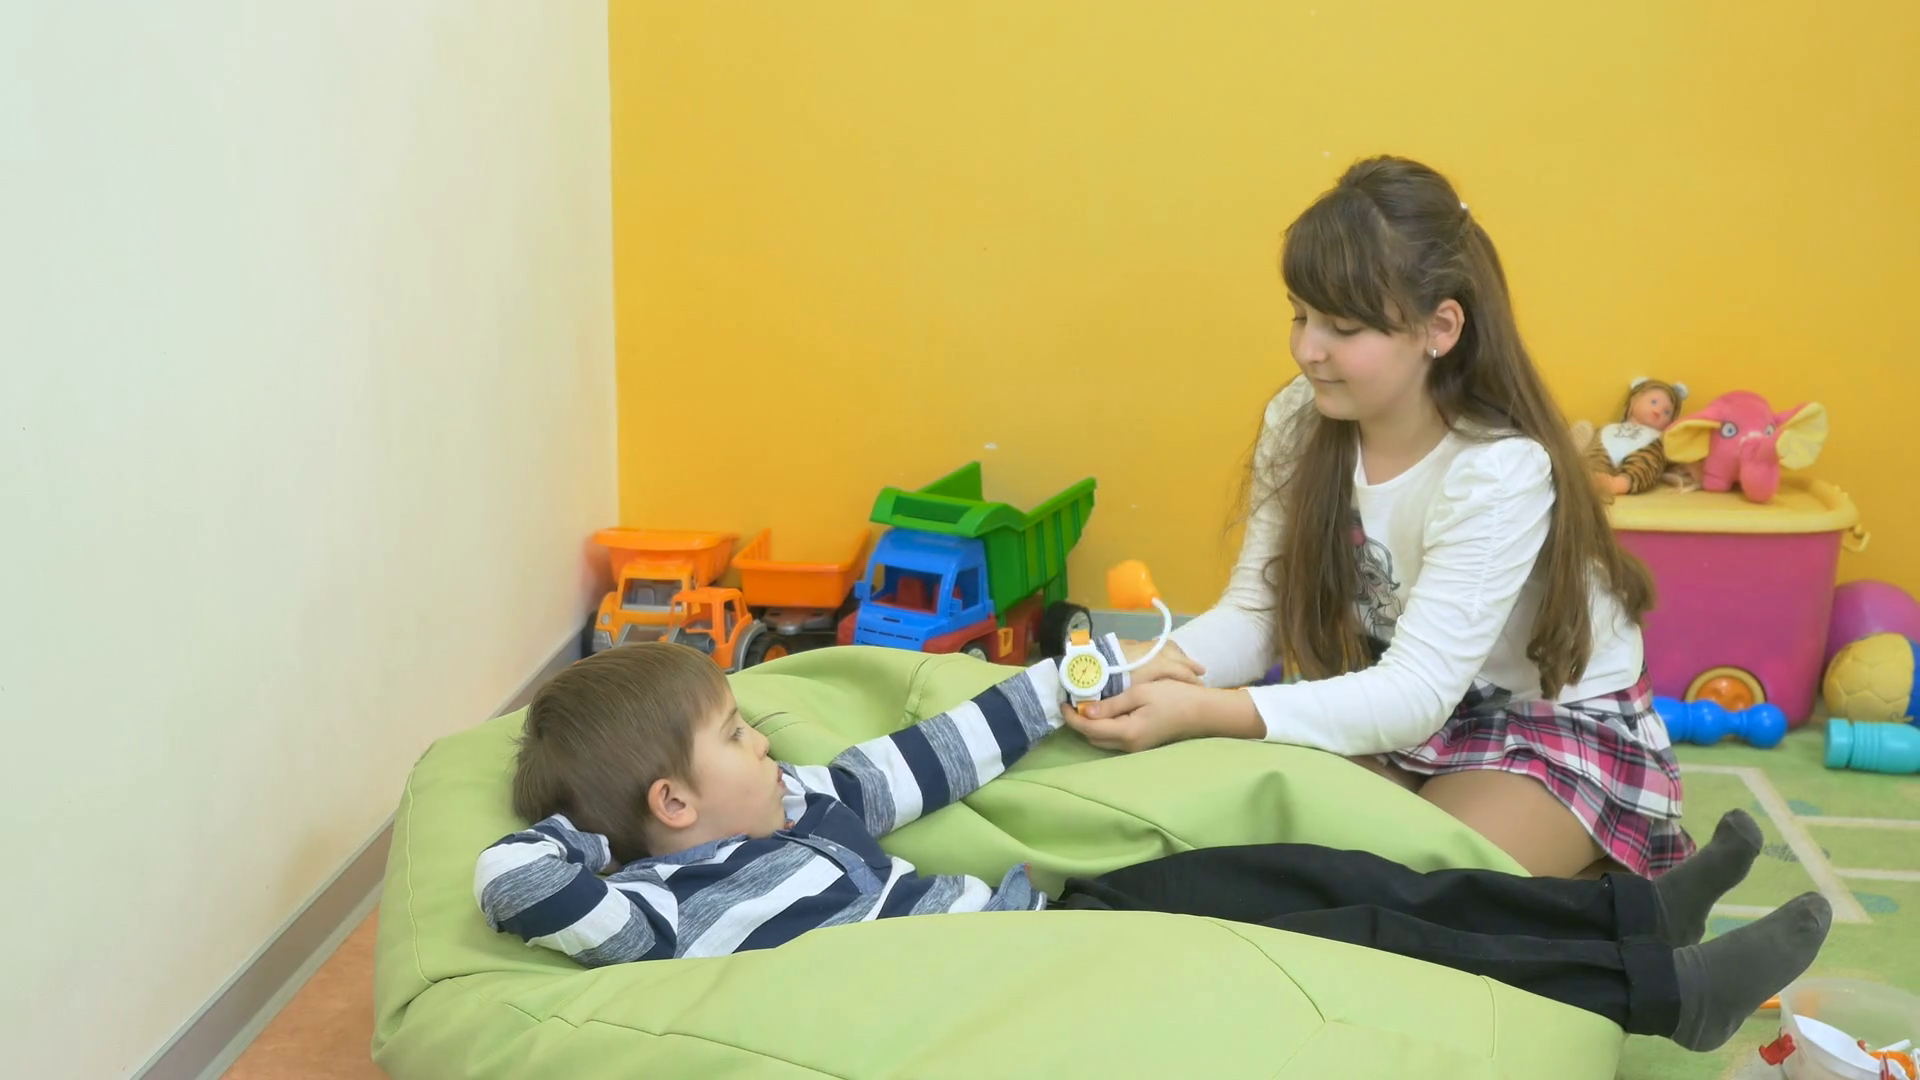 Little boy and girl playing with toy tonometer in the room Stock Video Footage - Storyblocks